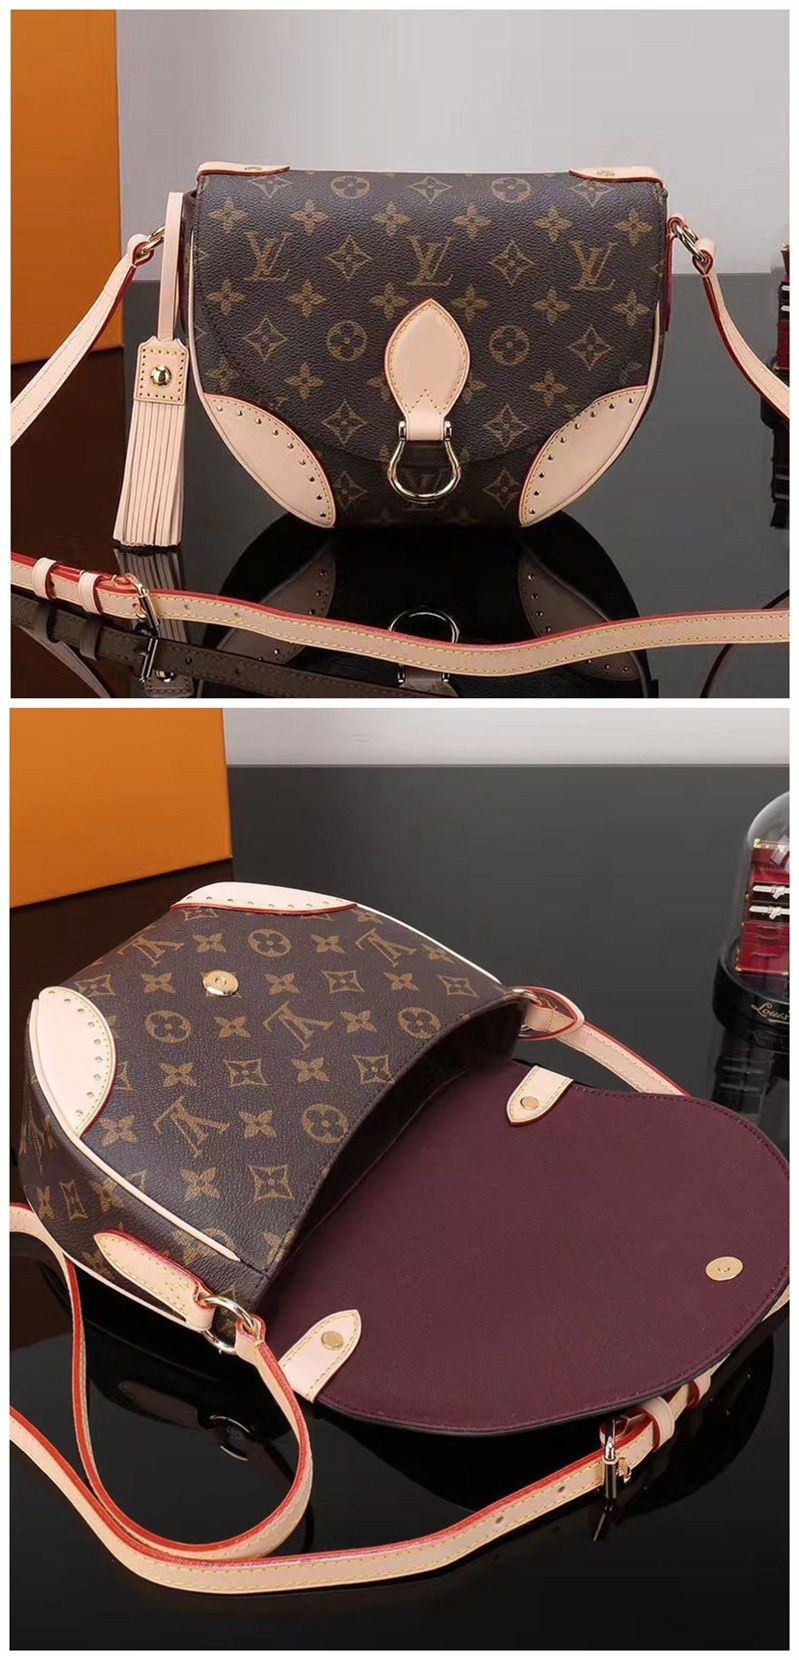 283da9b74625 Louis Vuitton Saint Cloud M41481 Brown. LV 2017 collection. Big Discount.   LV  Monogram  Handbag.